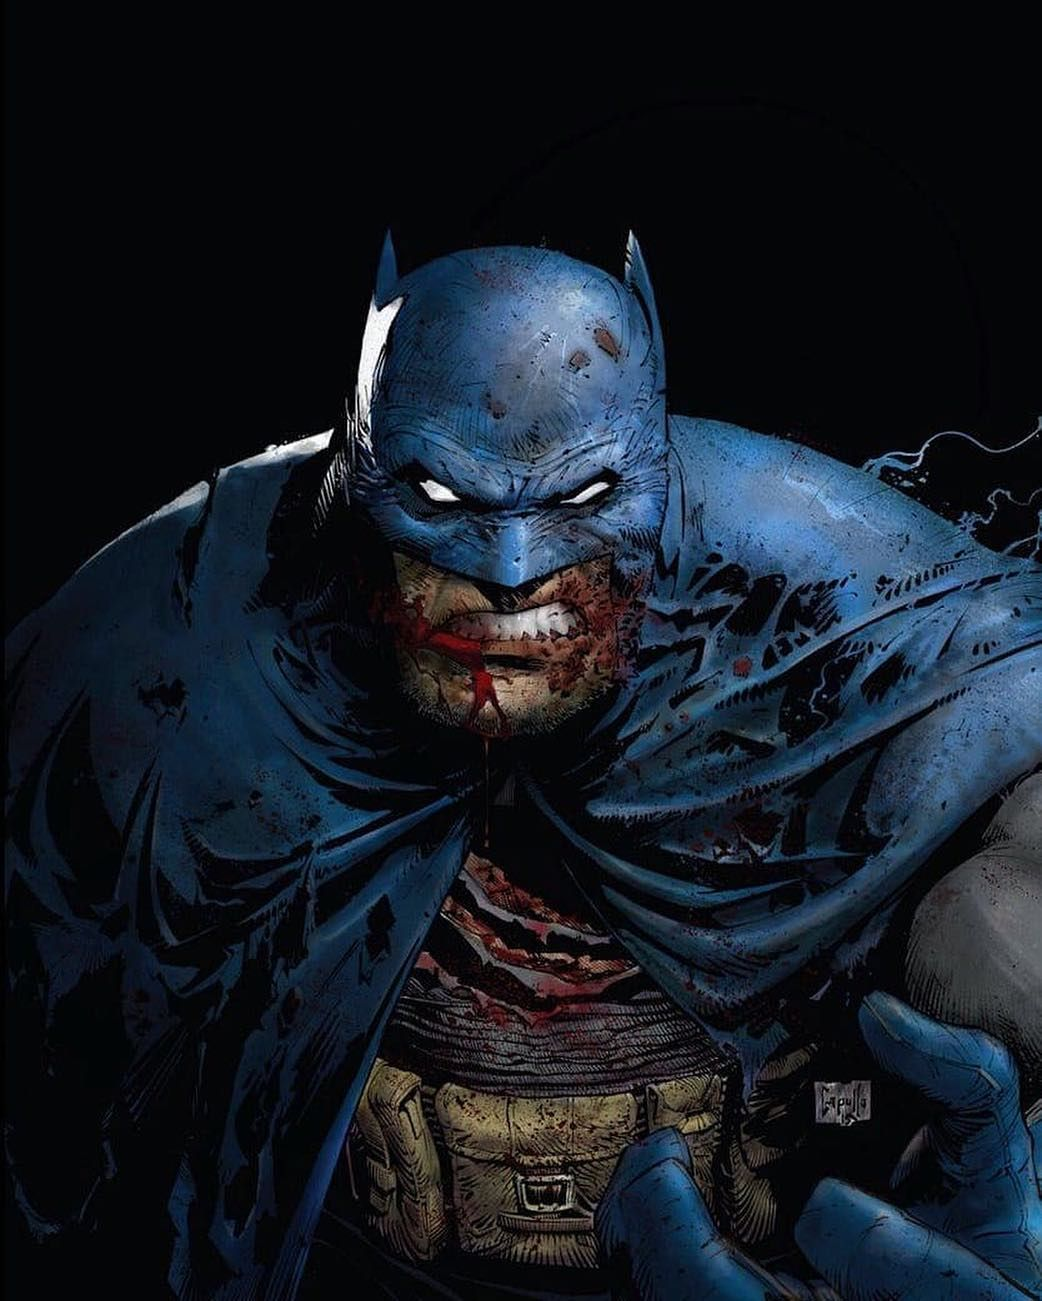 Popculturehustle On Instagram The Dark Knight Returns By Greg